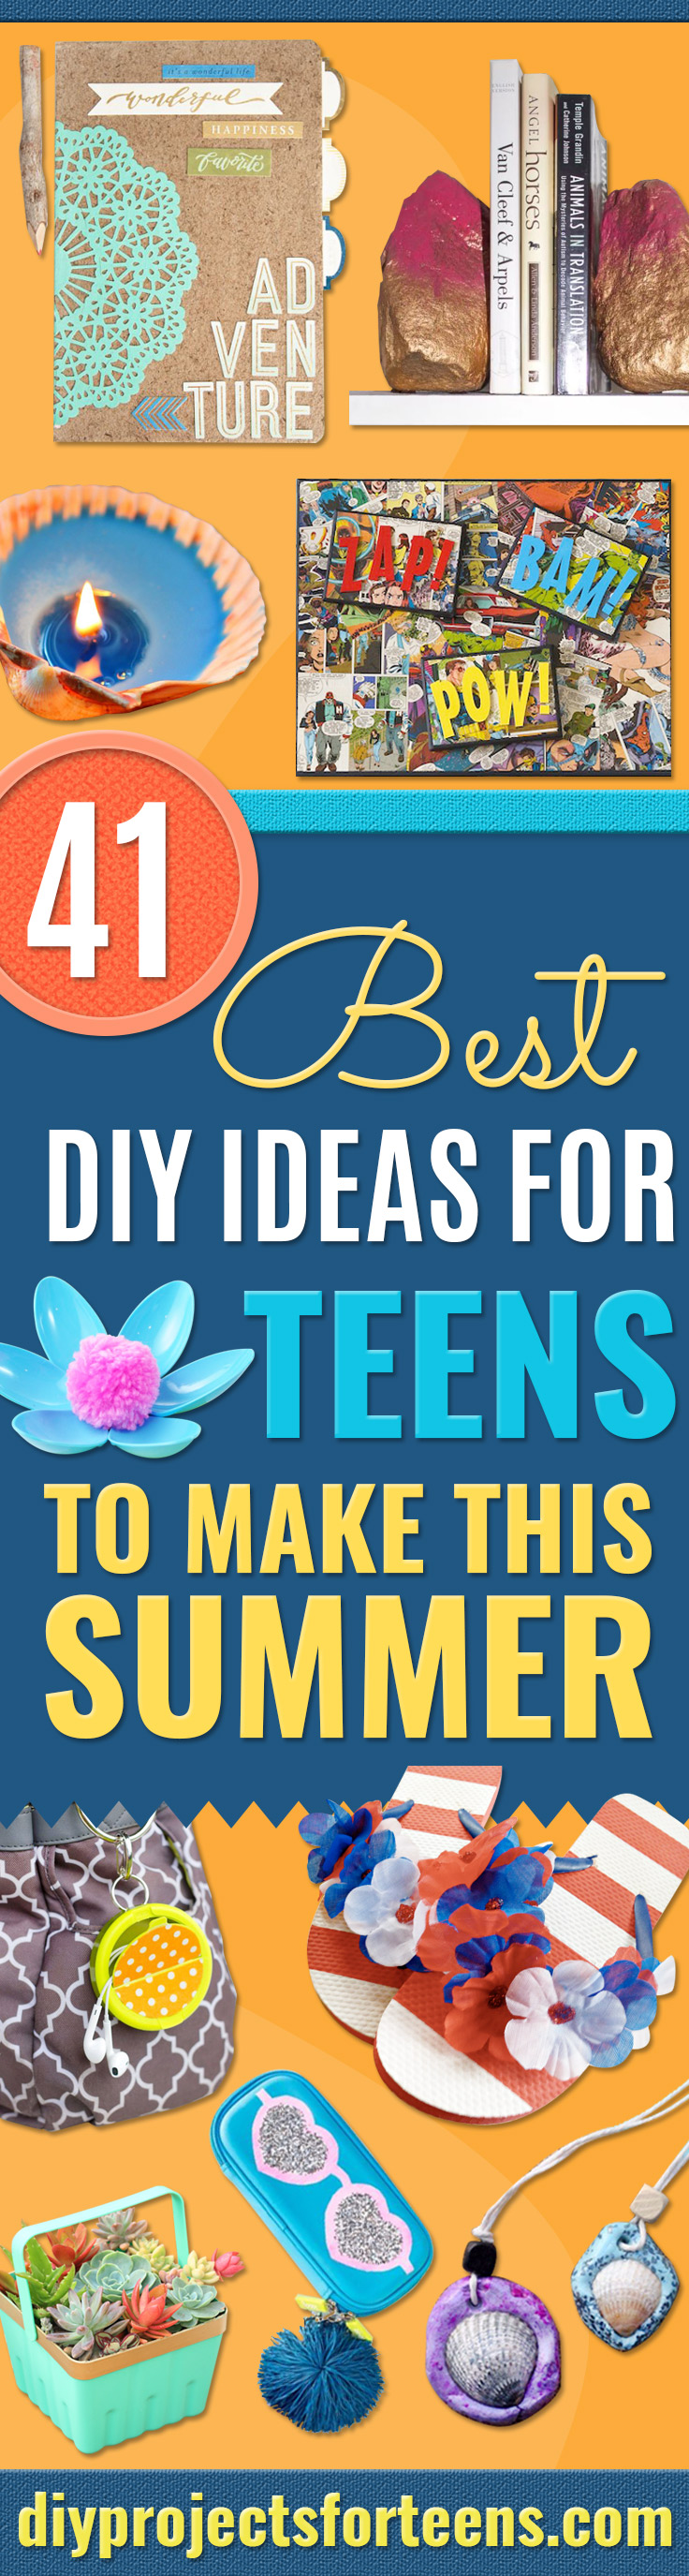 Best DIY Ideas for Teens To Make This Summer - Fun and Easy Crafts, Room Decor, Toys and Craft Projects to Make And Sell - Cool Gifts for Friends, Awesome Things To Do When You Are Bored - Teenagers - Boys and Girls Love Making These Creative Projects With Step by Step Tutorials and Instructions #diyideas #summer #teencrafts #crafts